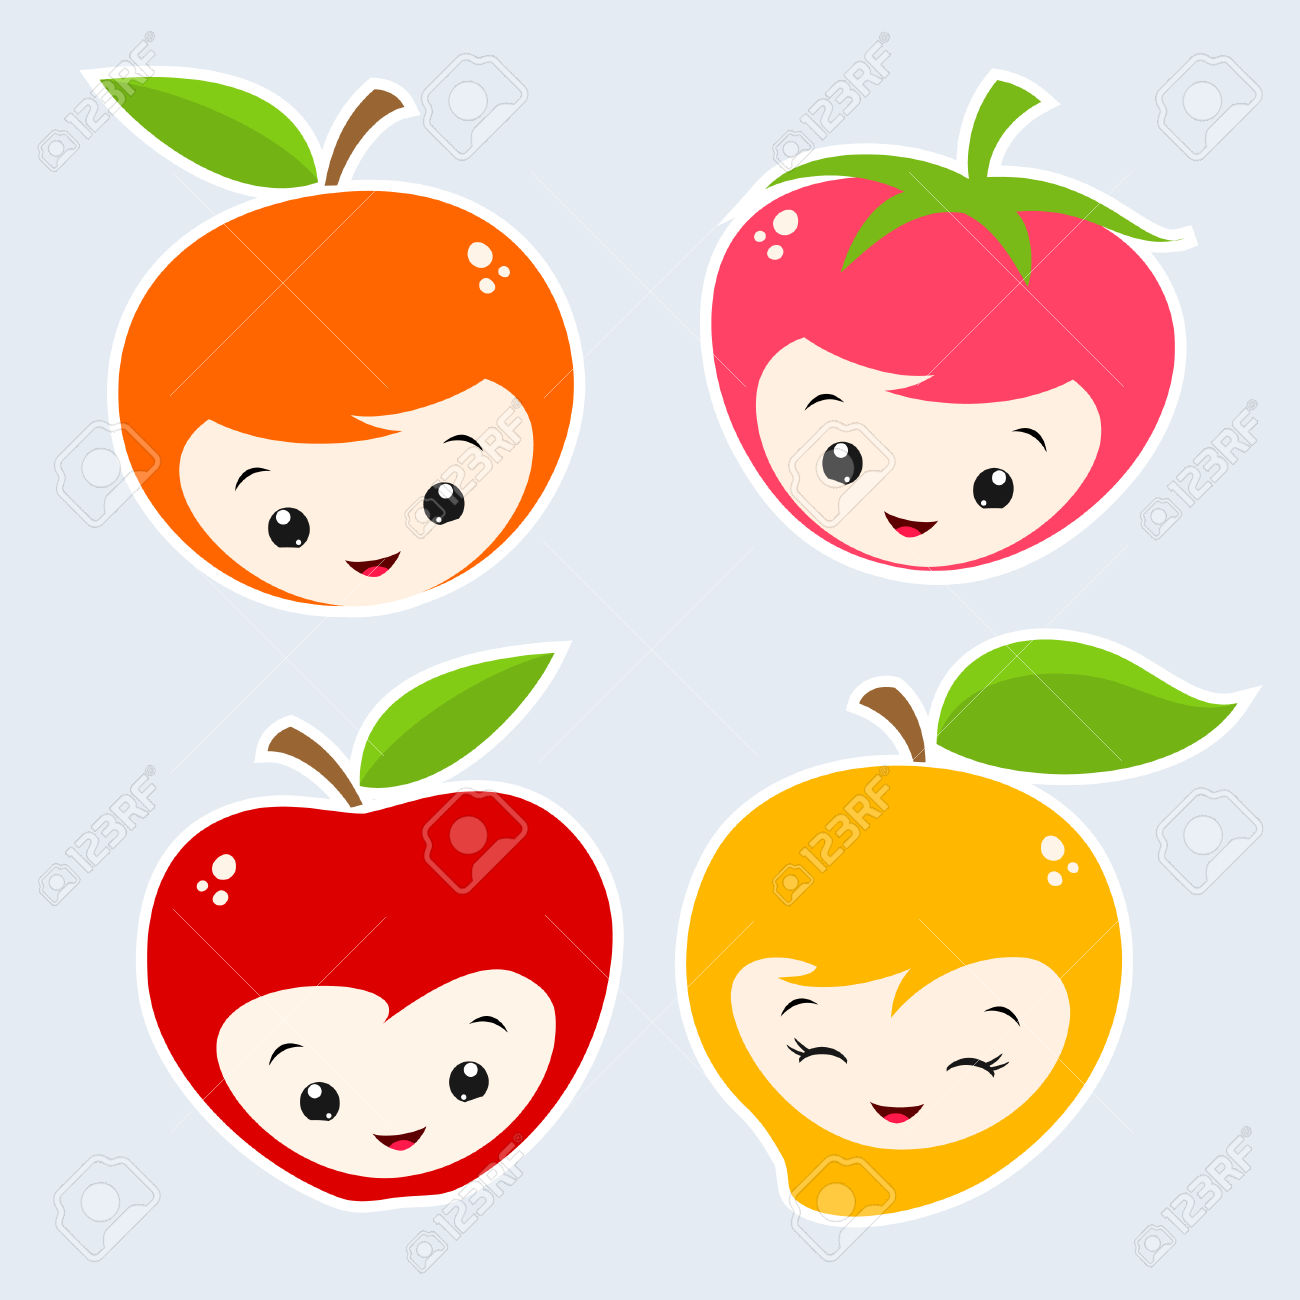 Cute Cartoon Fruit Faces Royalty Free Cliparts, Vectors, And Stock.